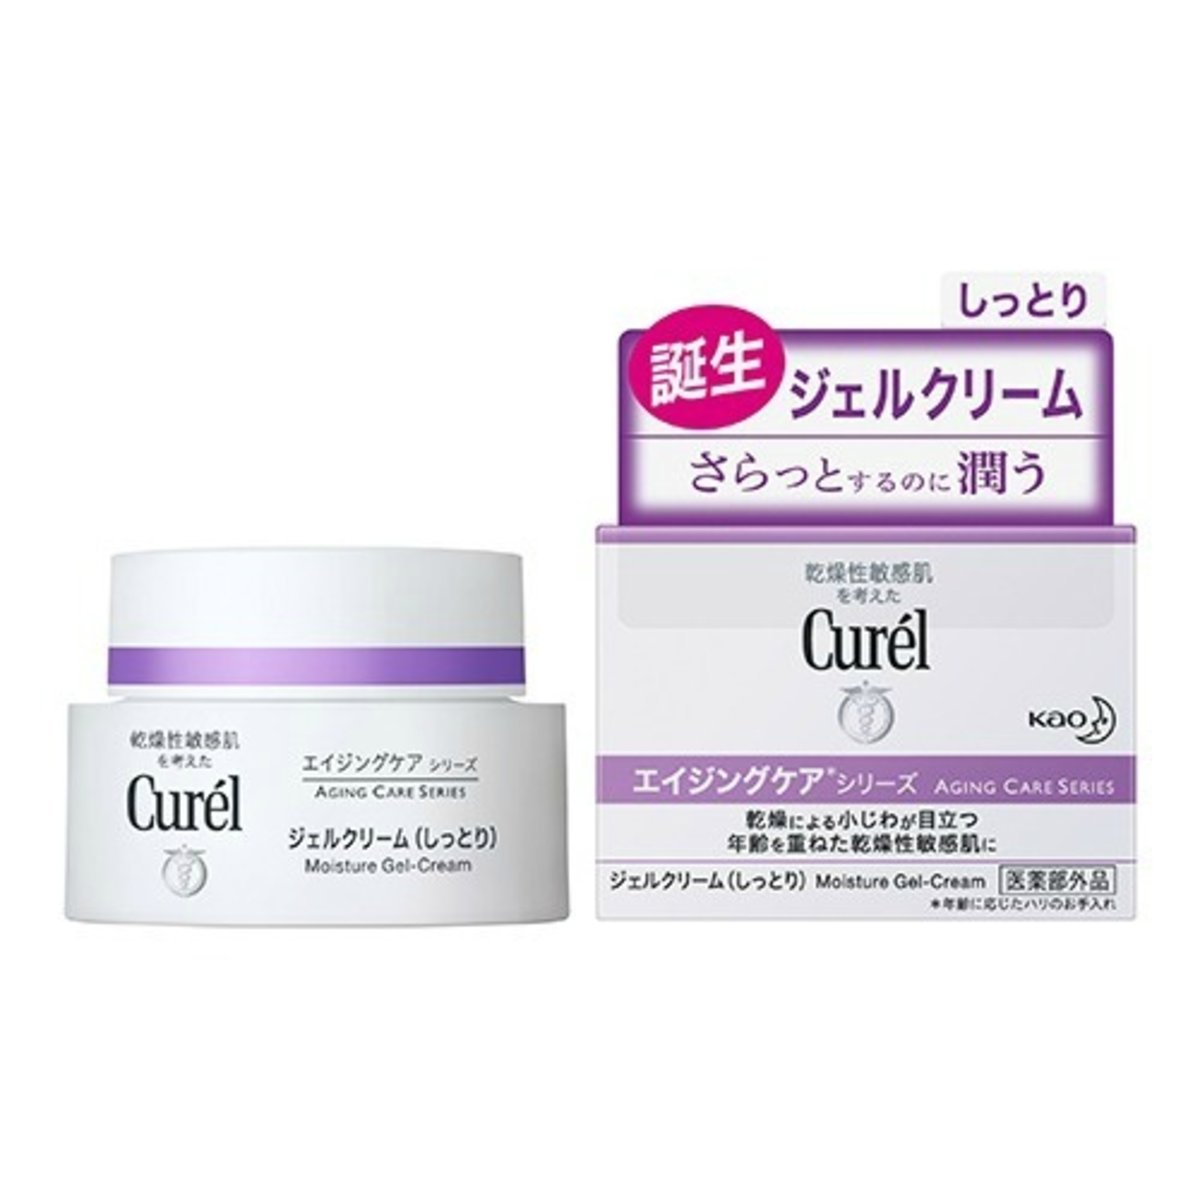 Aging Care Series Moisture Gel Cream (Purple) 40g (4901301334527)